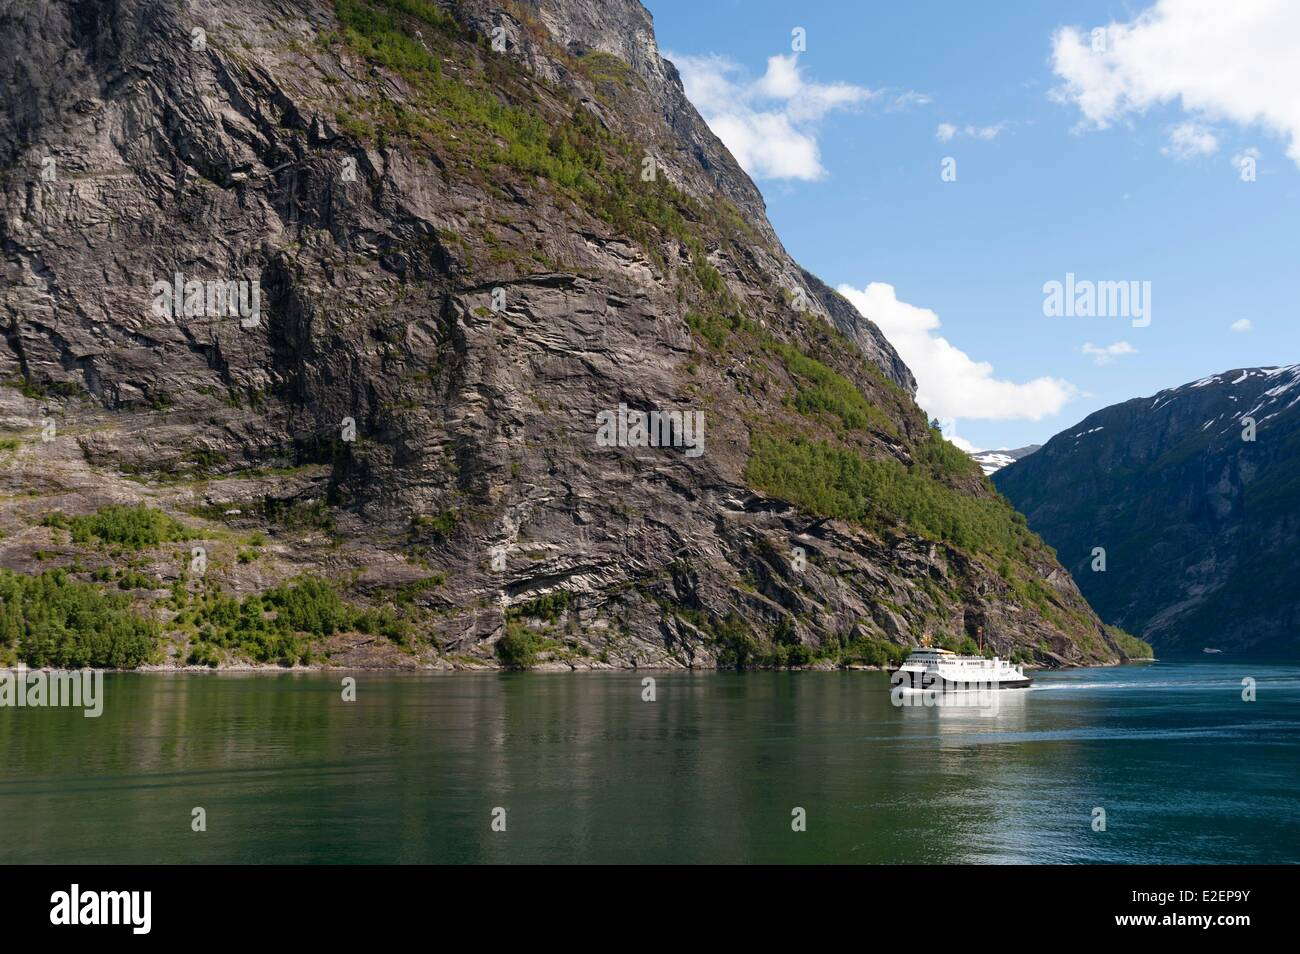 Norway, More og Romsdal County, cruise ship in Geirangerfjord - Stock Image